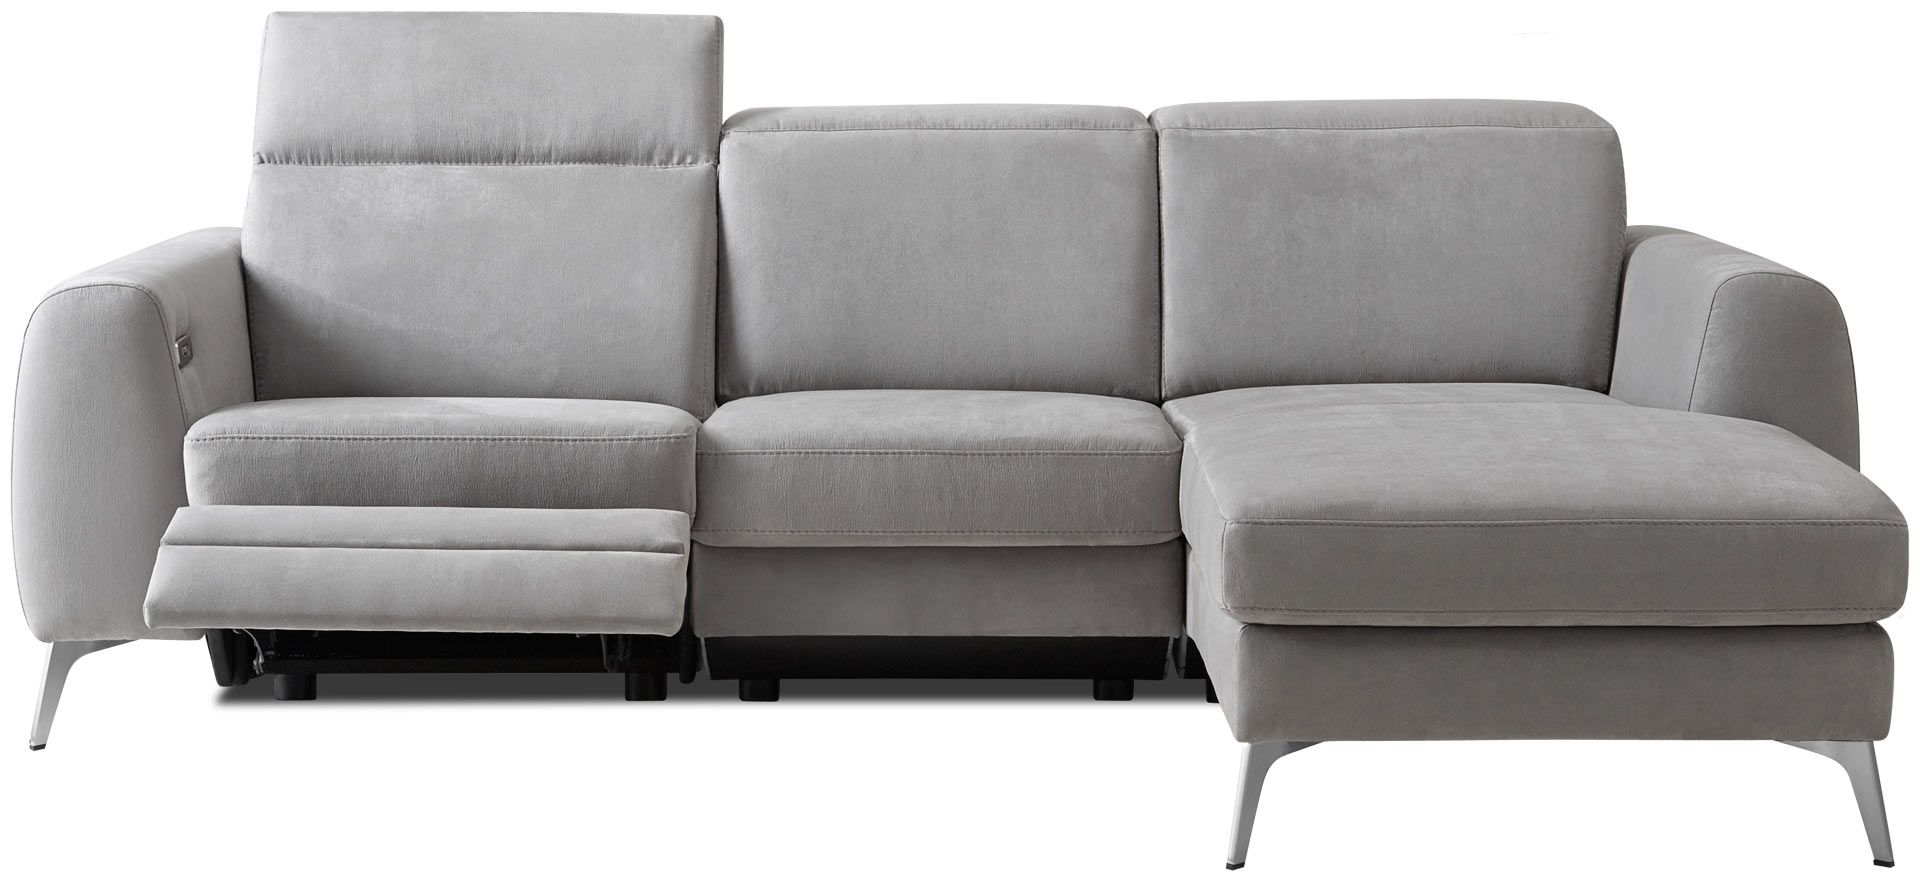 Modern Madison Recliner Sofas Quality From Boconcept 8500 Recliningsofa Contemporary Sofa Sofa Design Reclining Sofa